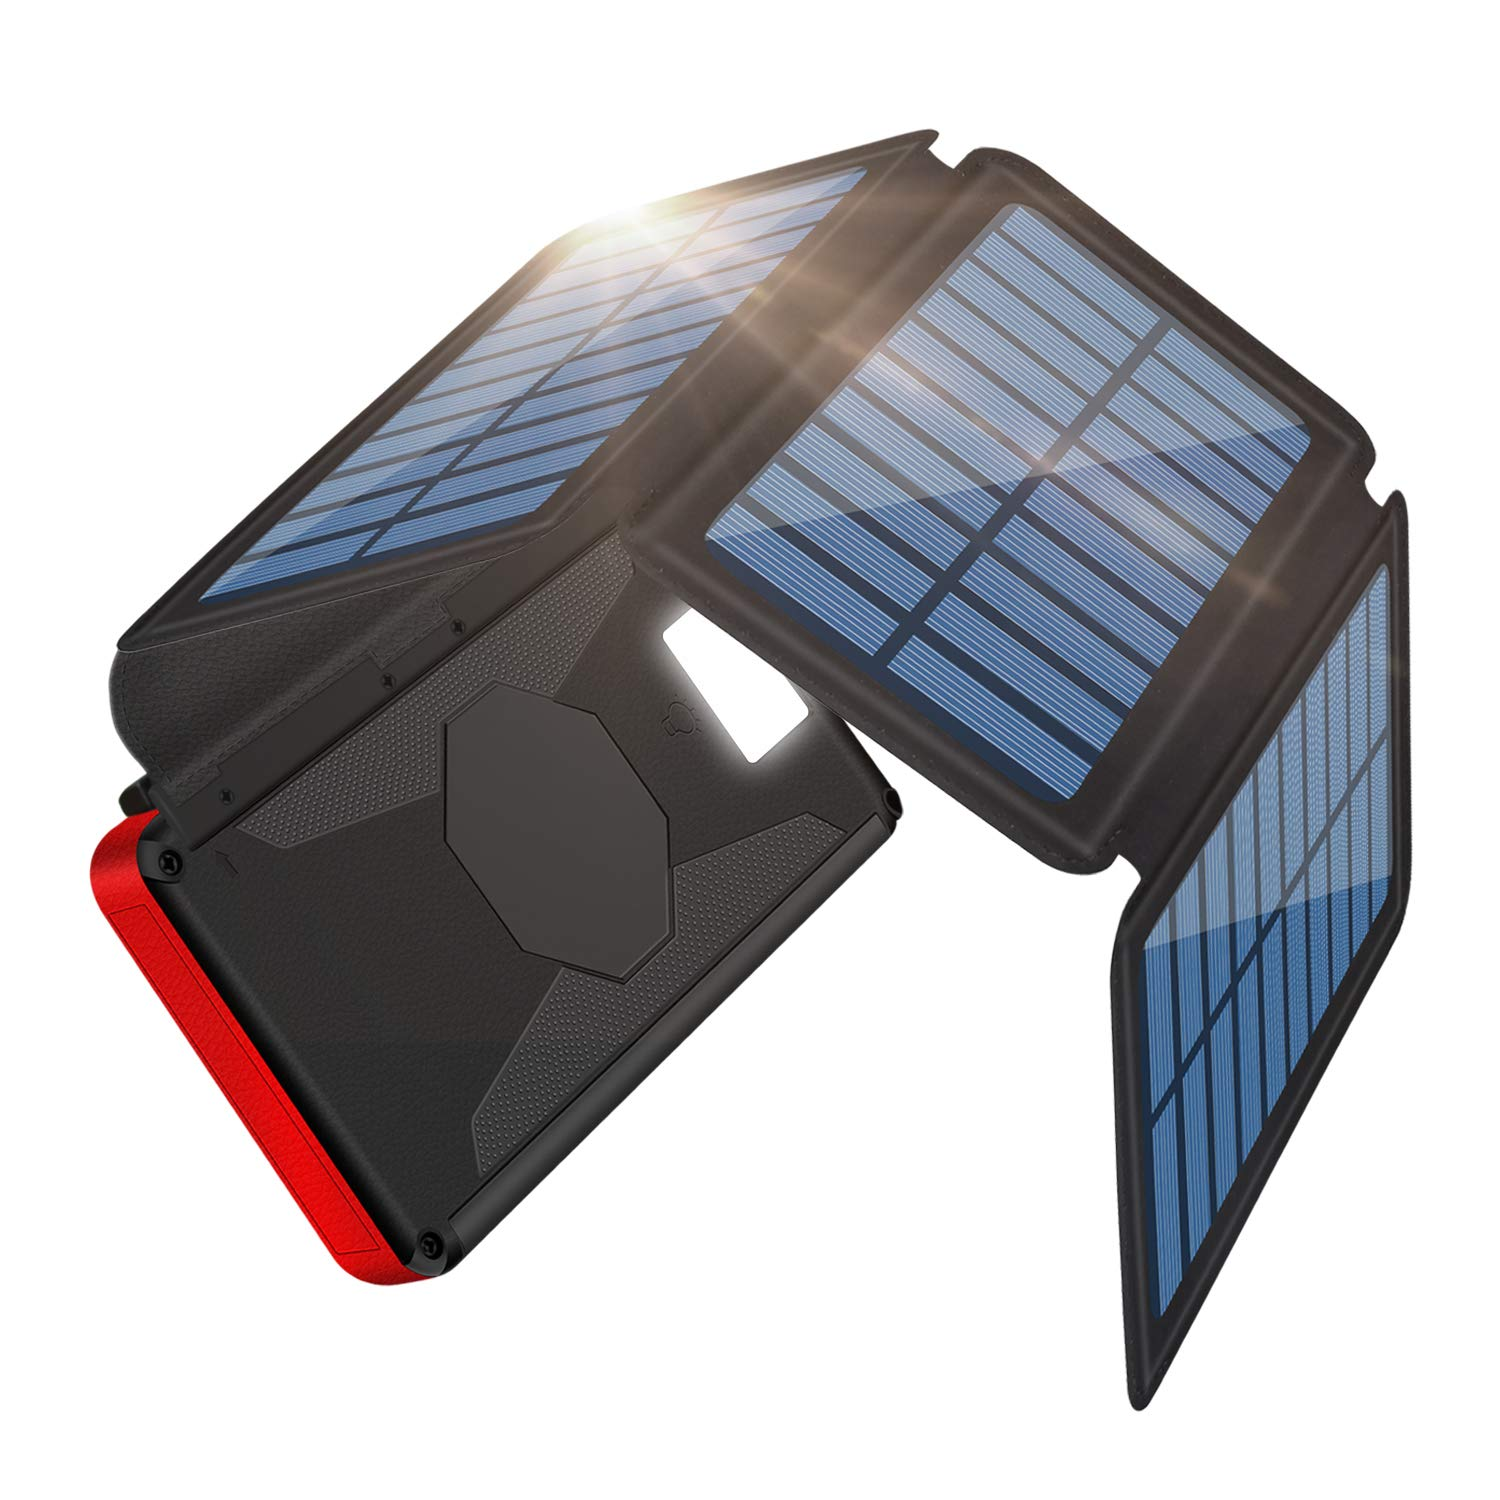 Be Charming Solar Portable Charger